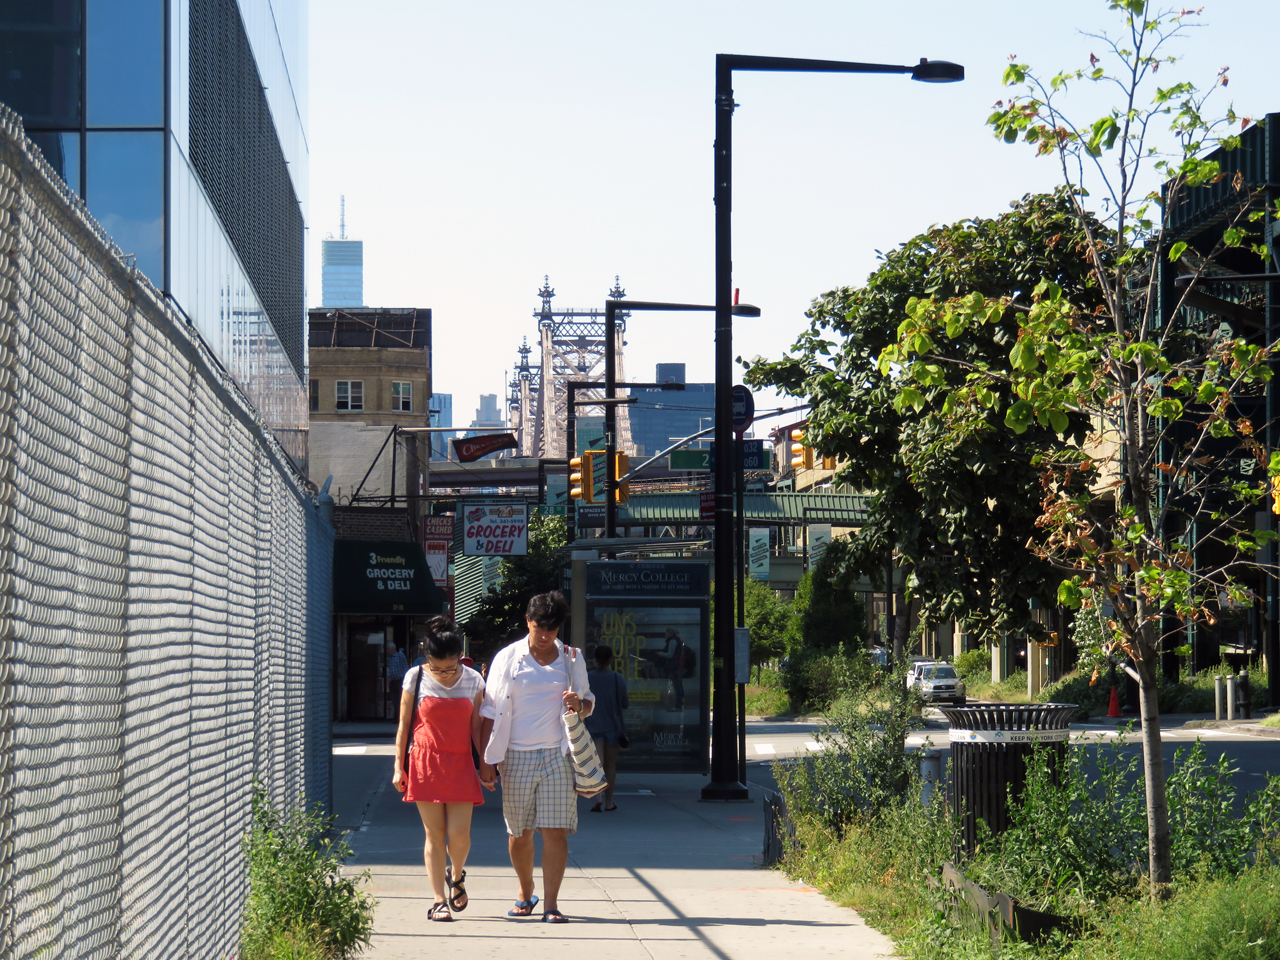 Queensboro Plaza (in the distance), as seen along Queens Plaza South from the site of 28-07 Jackson Avenue (fence on the left)